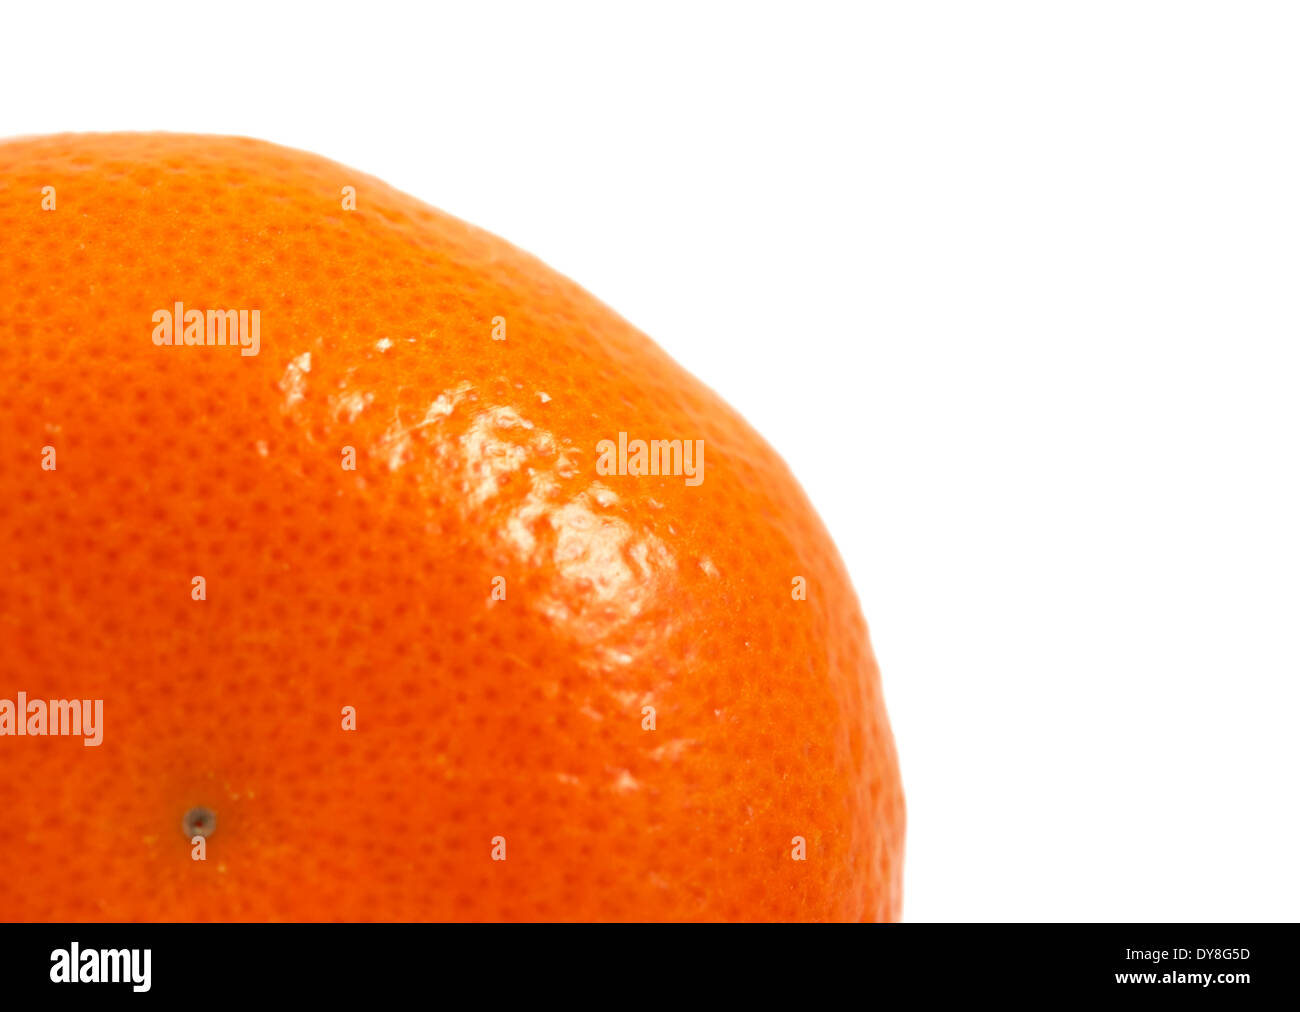 Satsuma oranges white background studio image Stock Photo